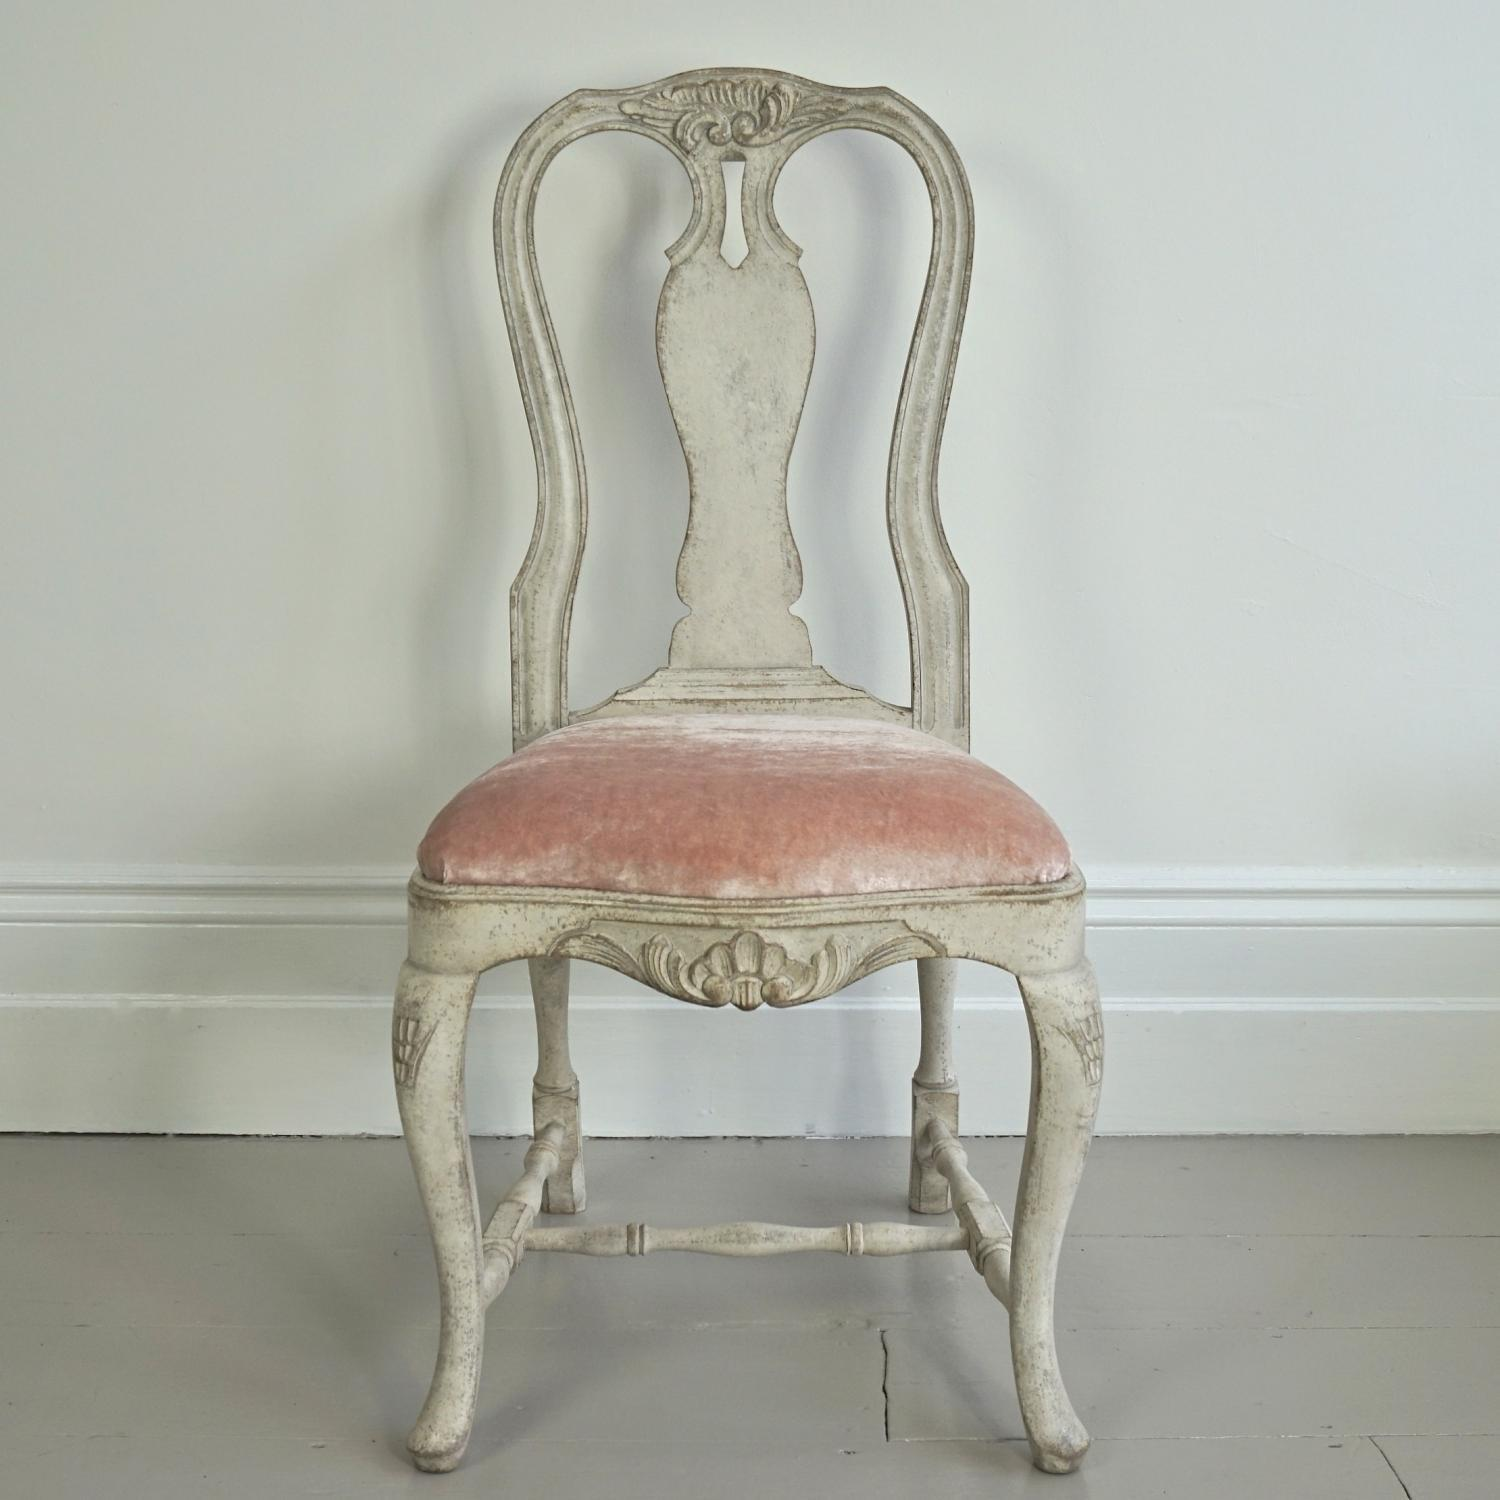 RICHLY CARVED SWEDISH ROCOCO SIDE CHAIR in FURNITURE